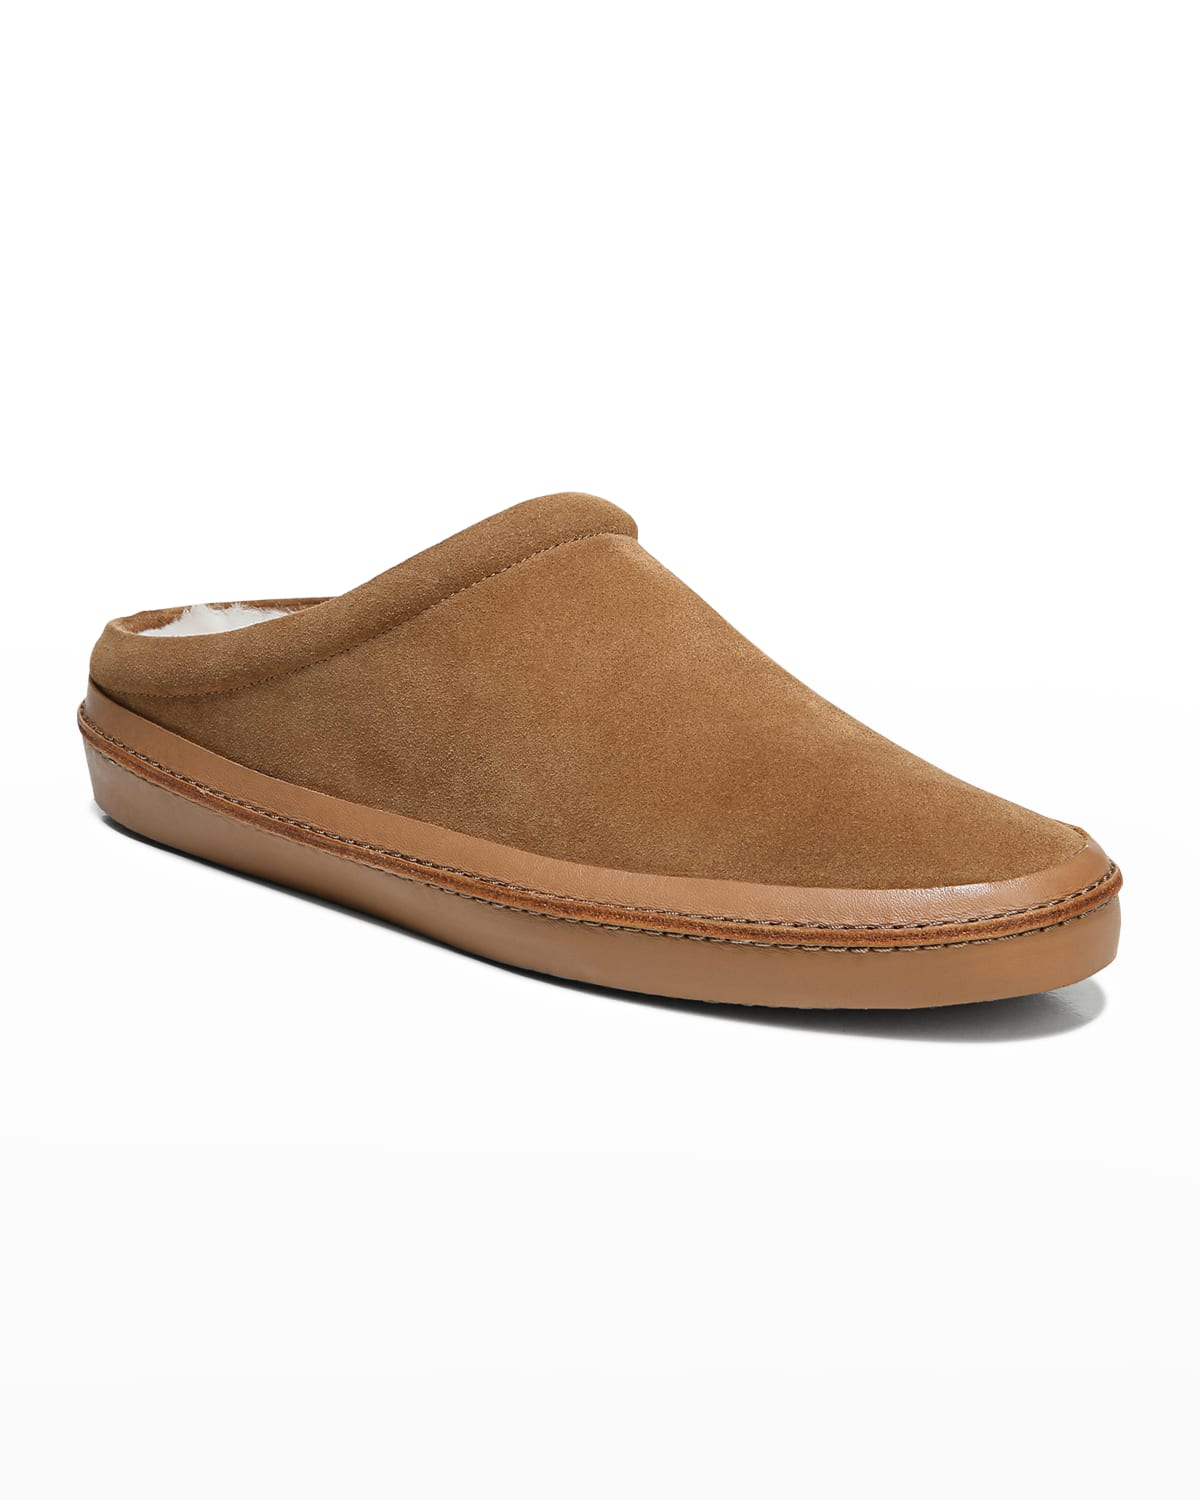 Men's Porter Suede Shearling-Lined Slippers